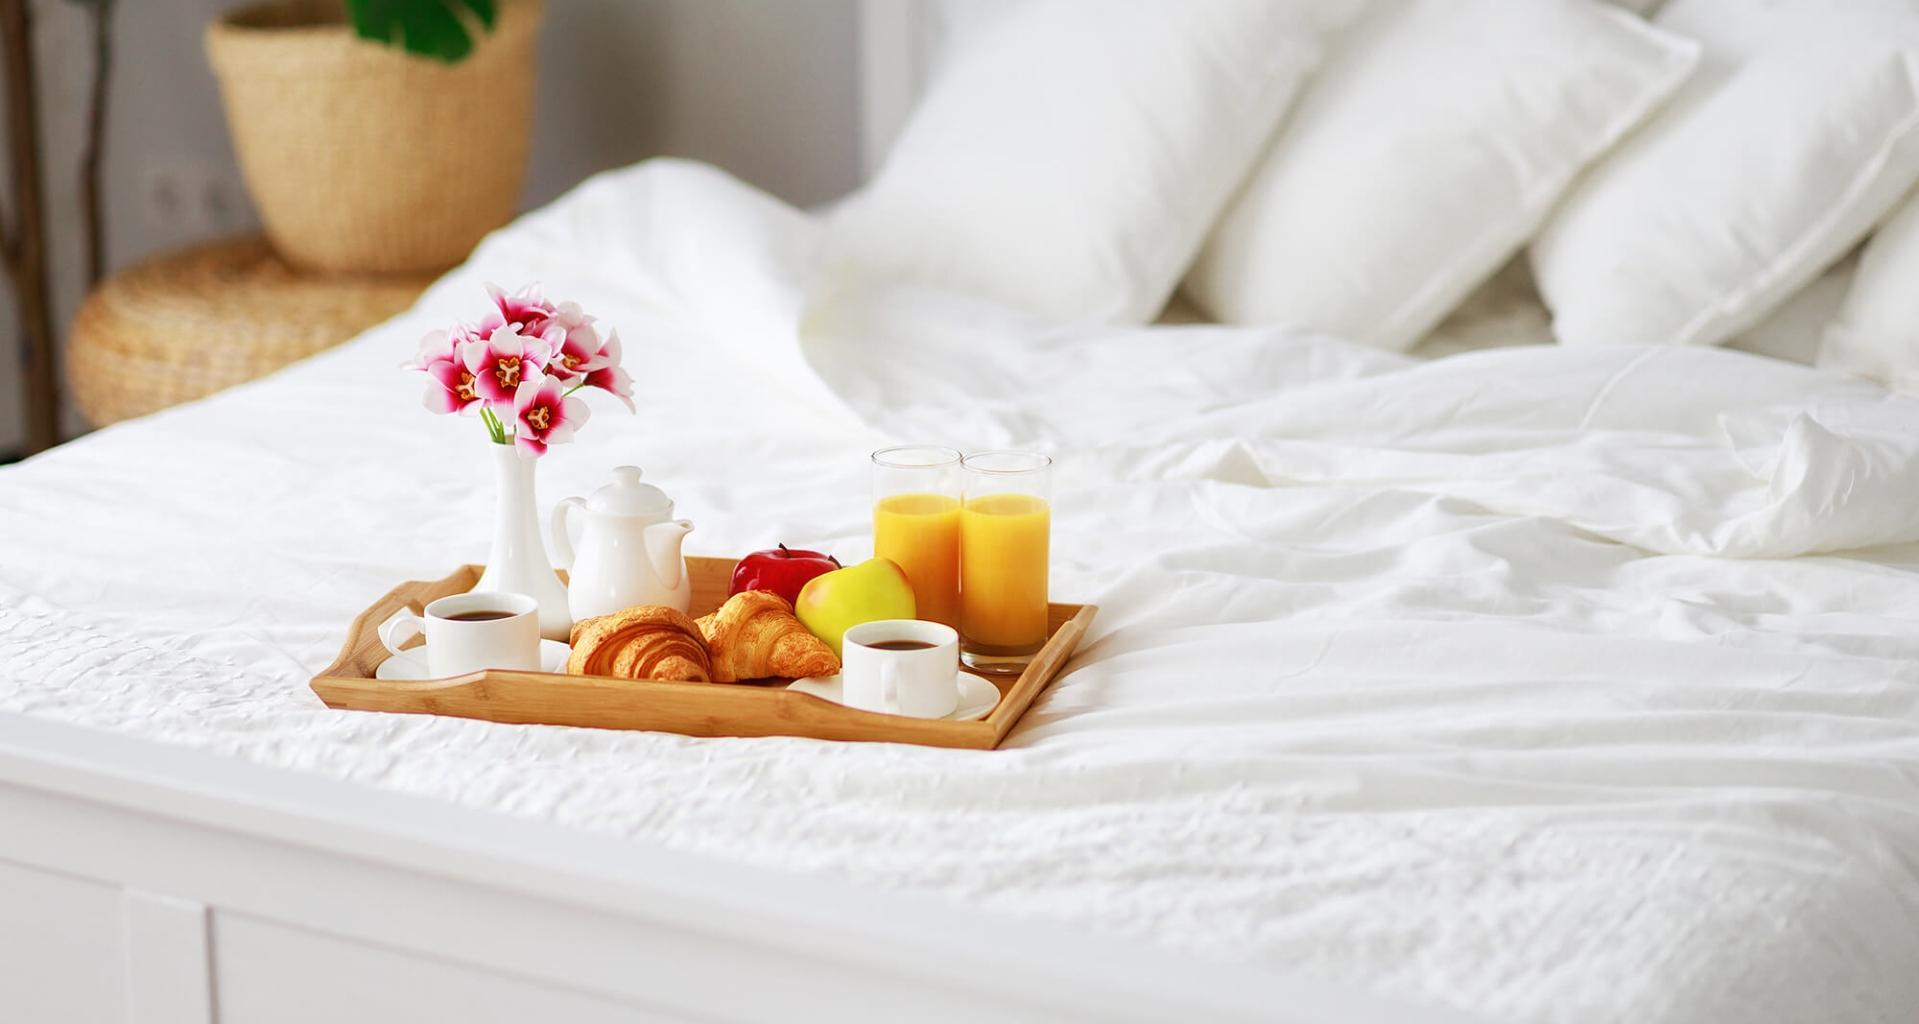 A fresh breakfast on a tray on a bed with white linens.